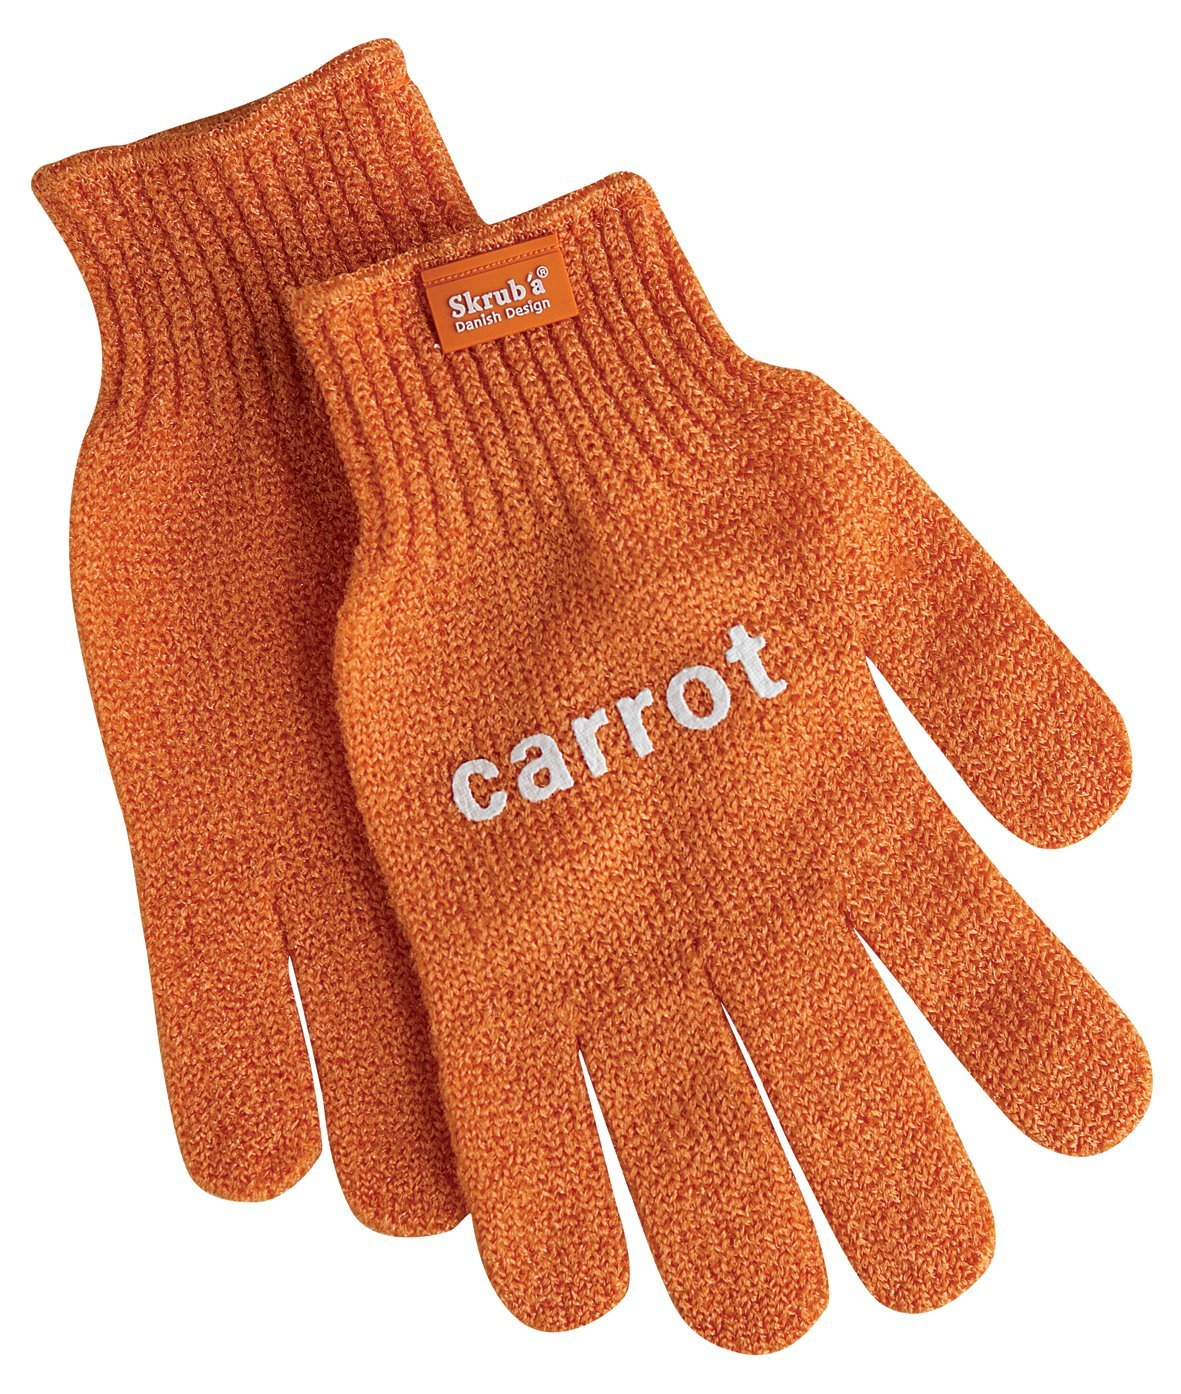 Skruba Glove for Carrots